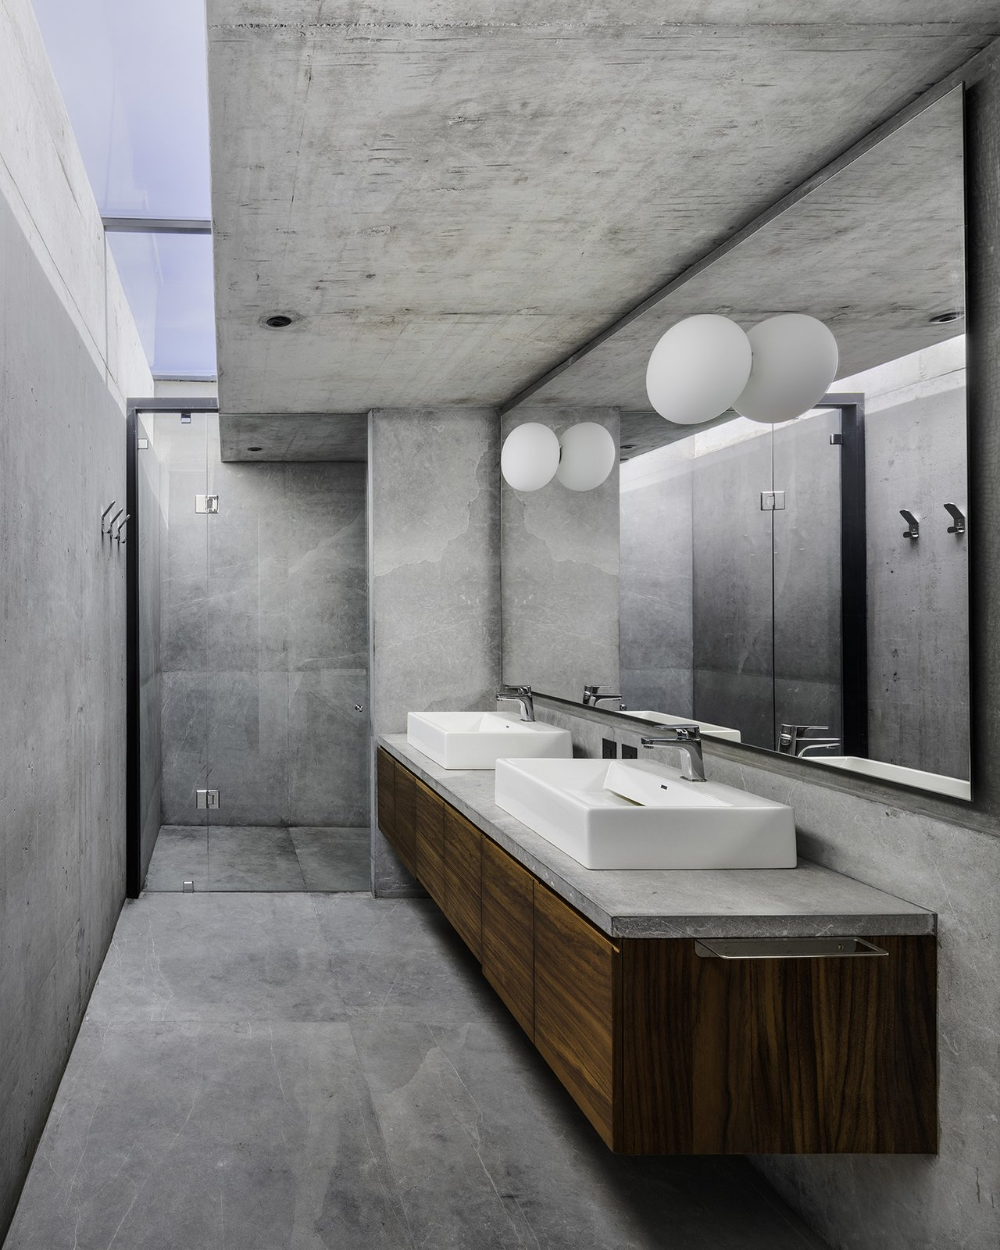 Photo 24 of 2415 in Best Bath Photos from A Monolithic, Concrete ...